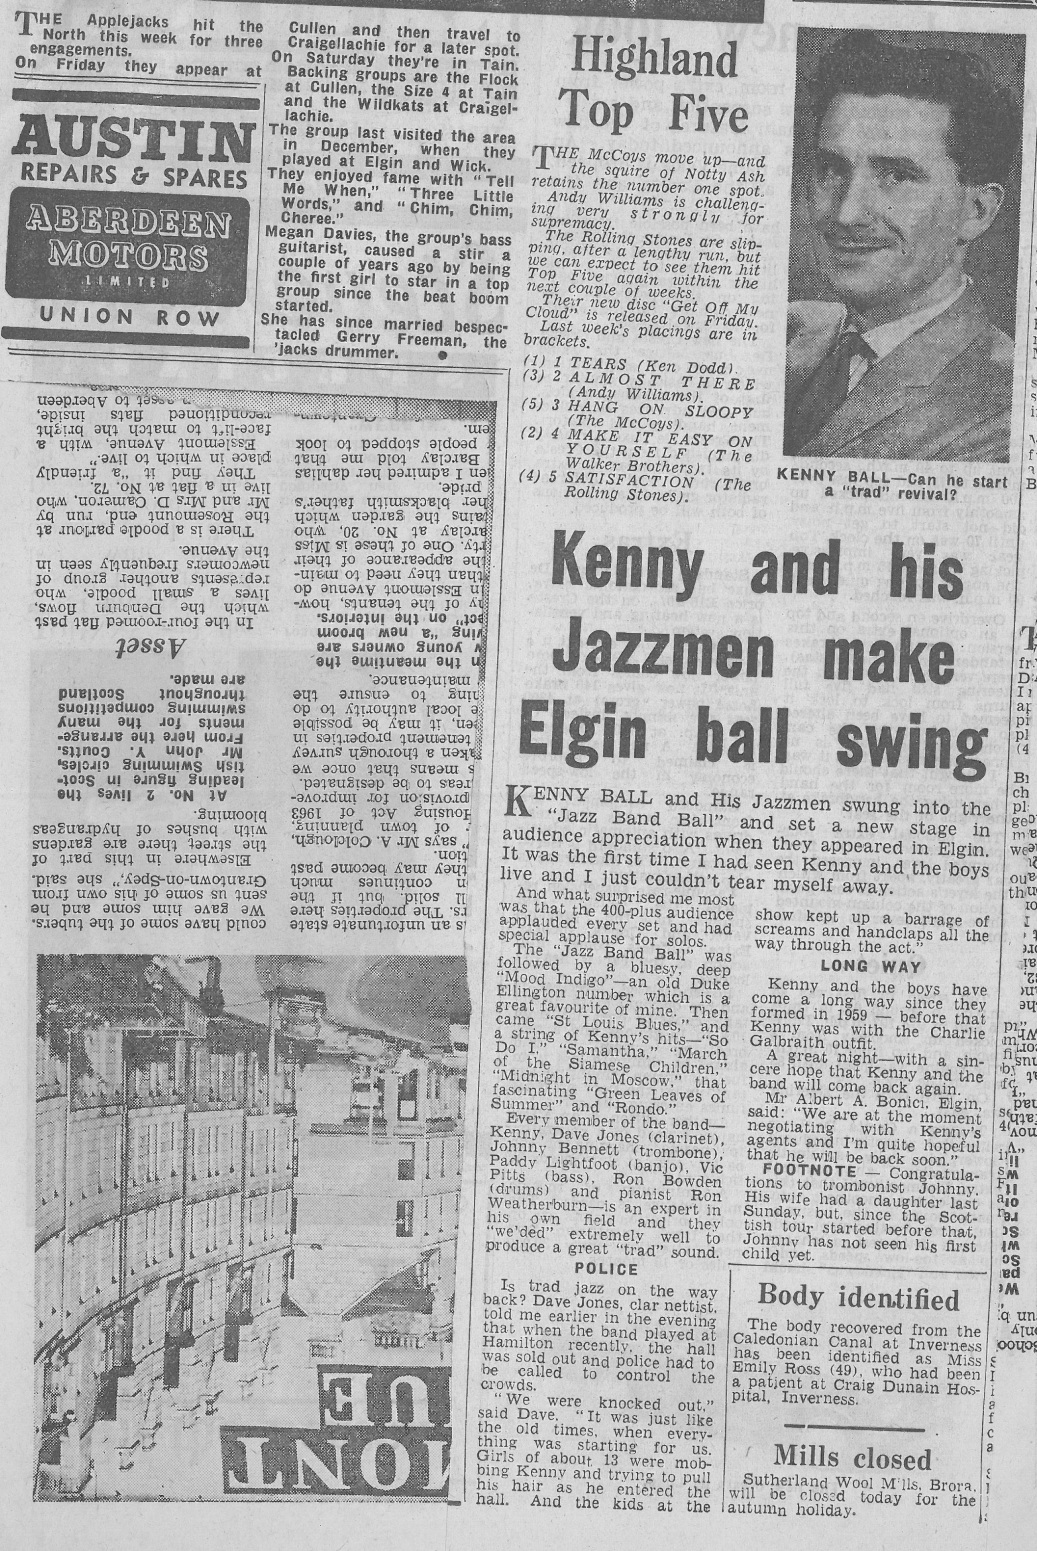 Kenny Ball and his Jazzmen were one of the popular jazz acts who Albert Bonici enjoyed.